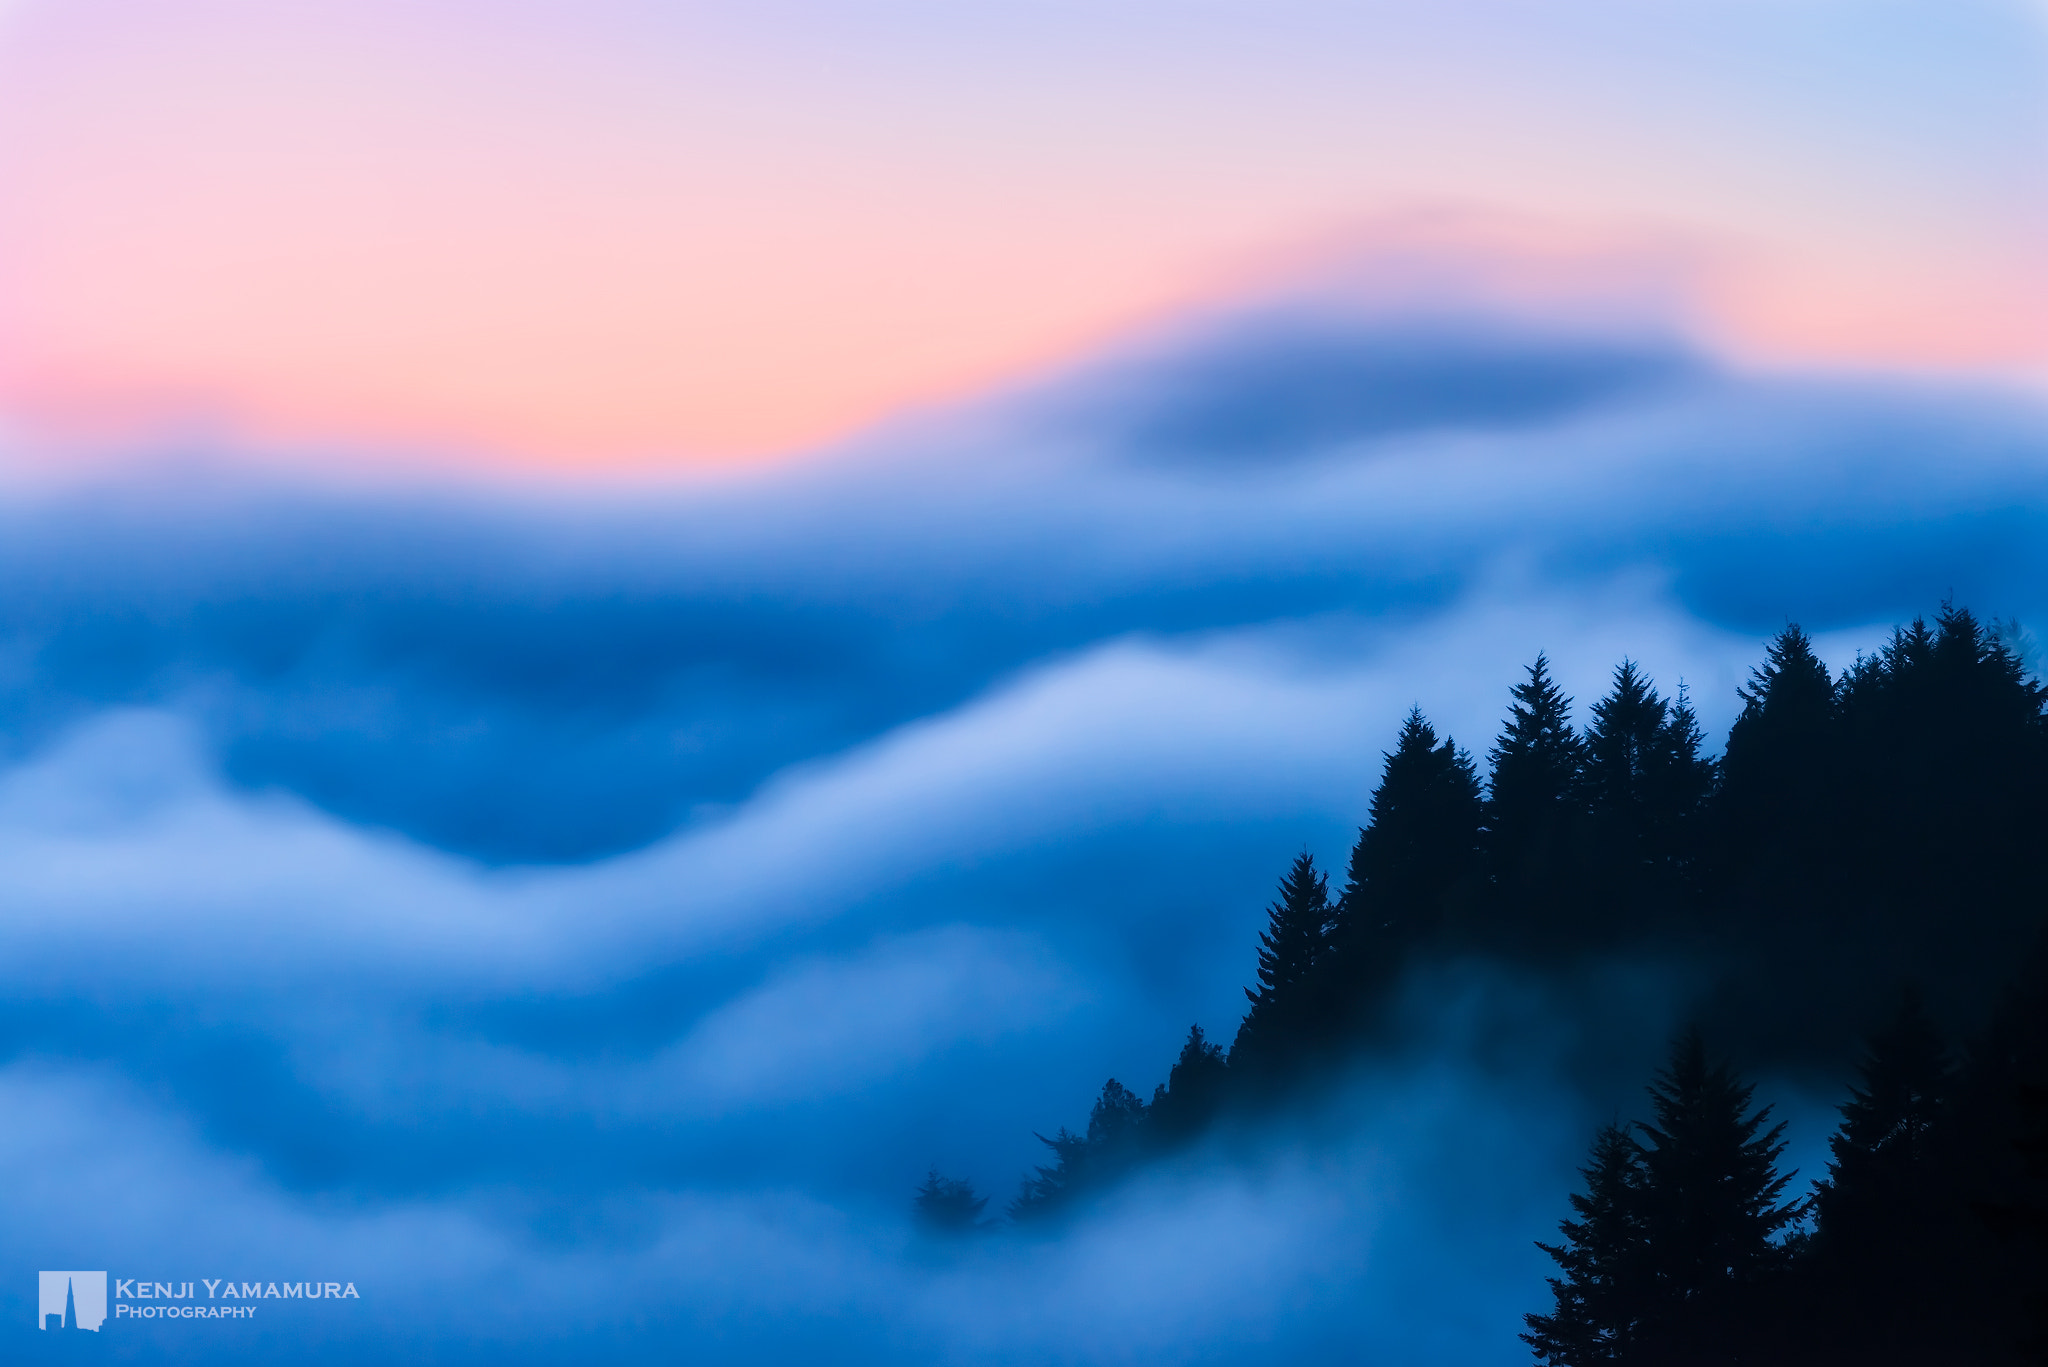 Photograph Into the Sea of Clouds by Kenji Yamamura on 500px